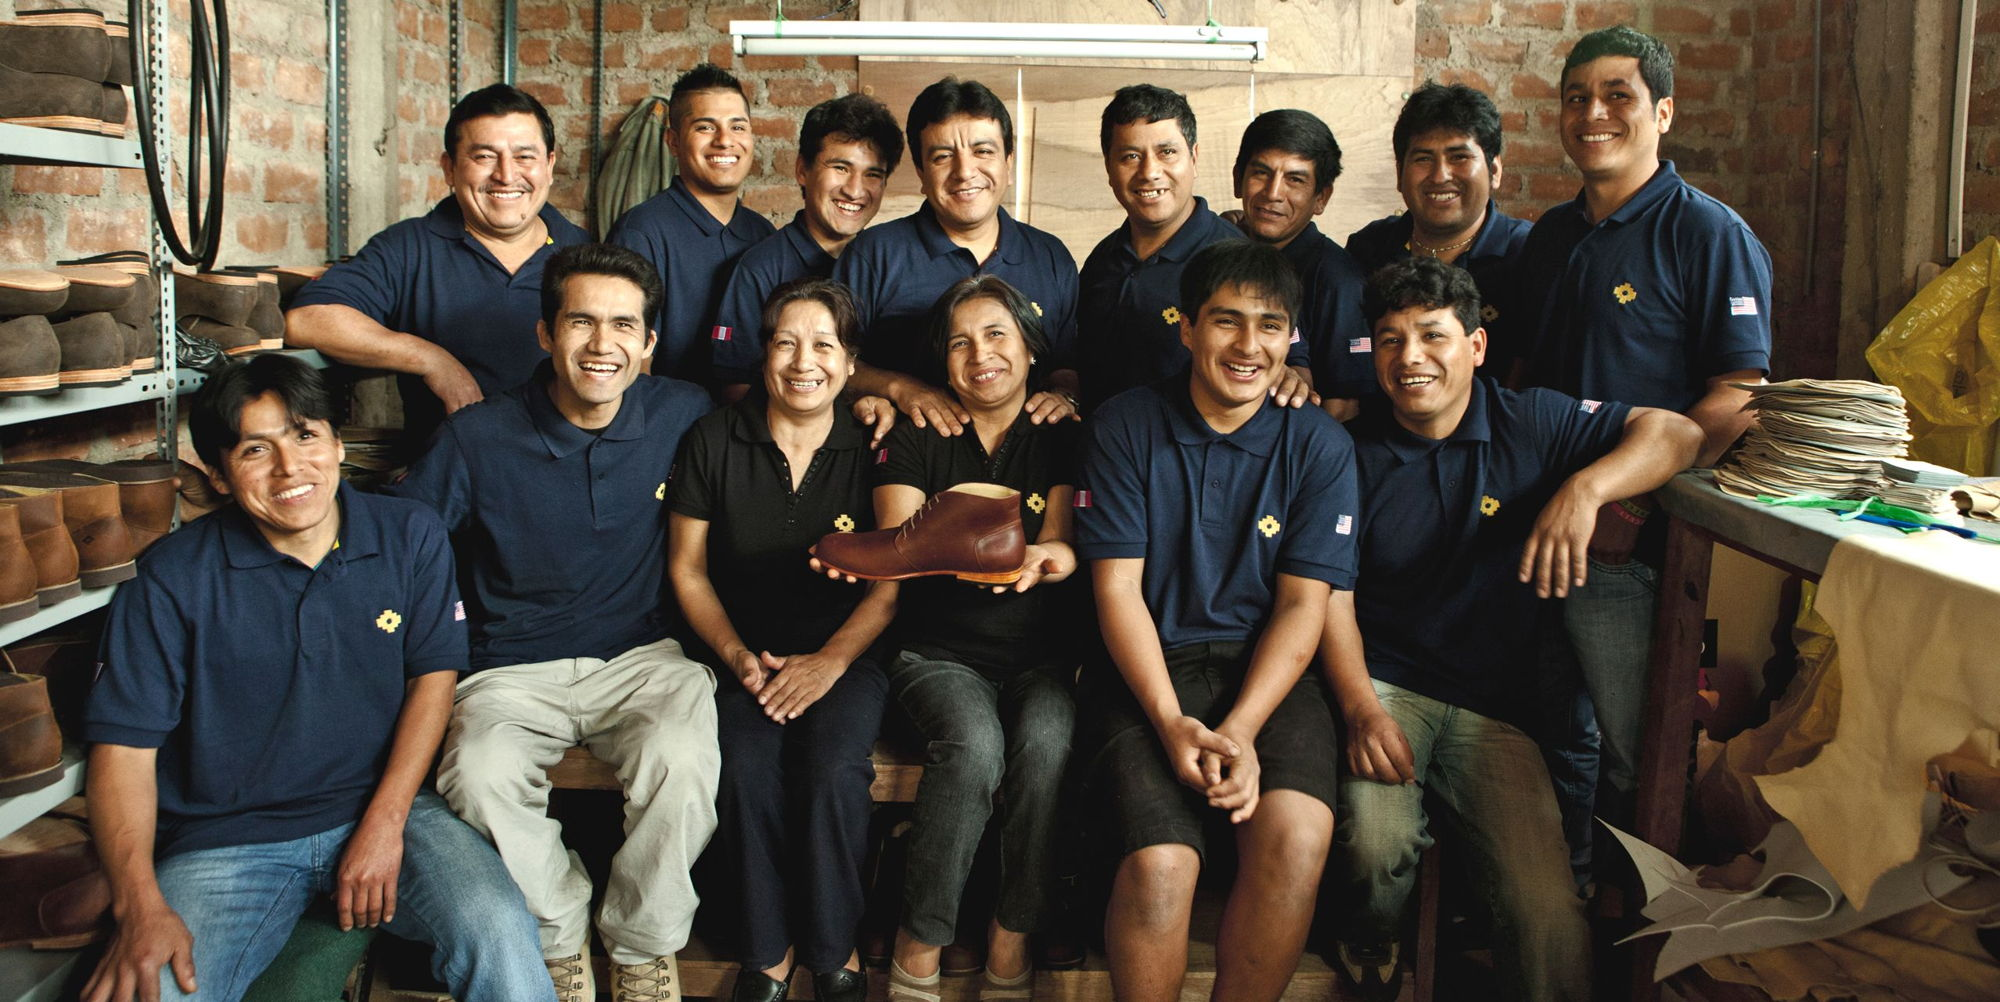 part of the Nisolo team in Peru